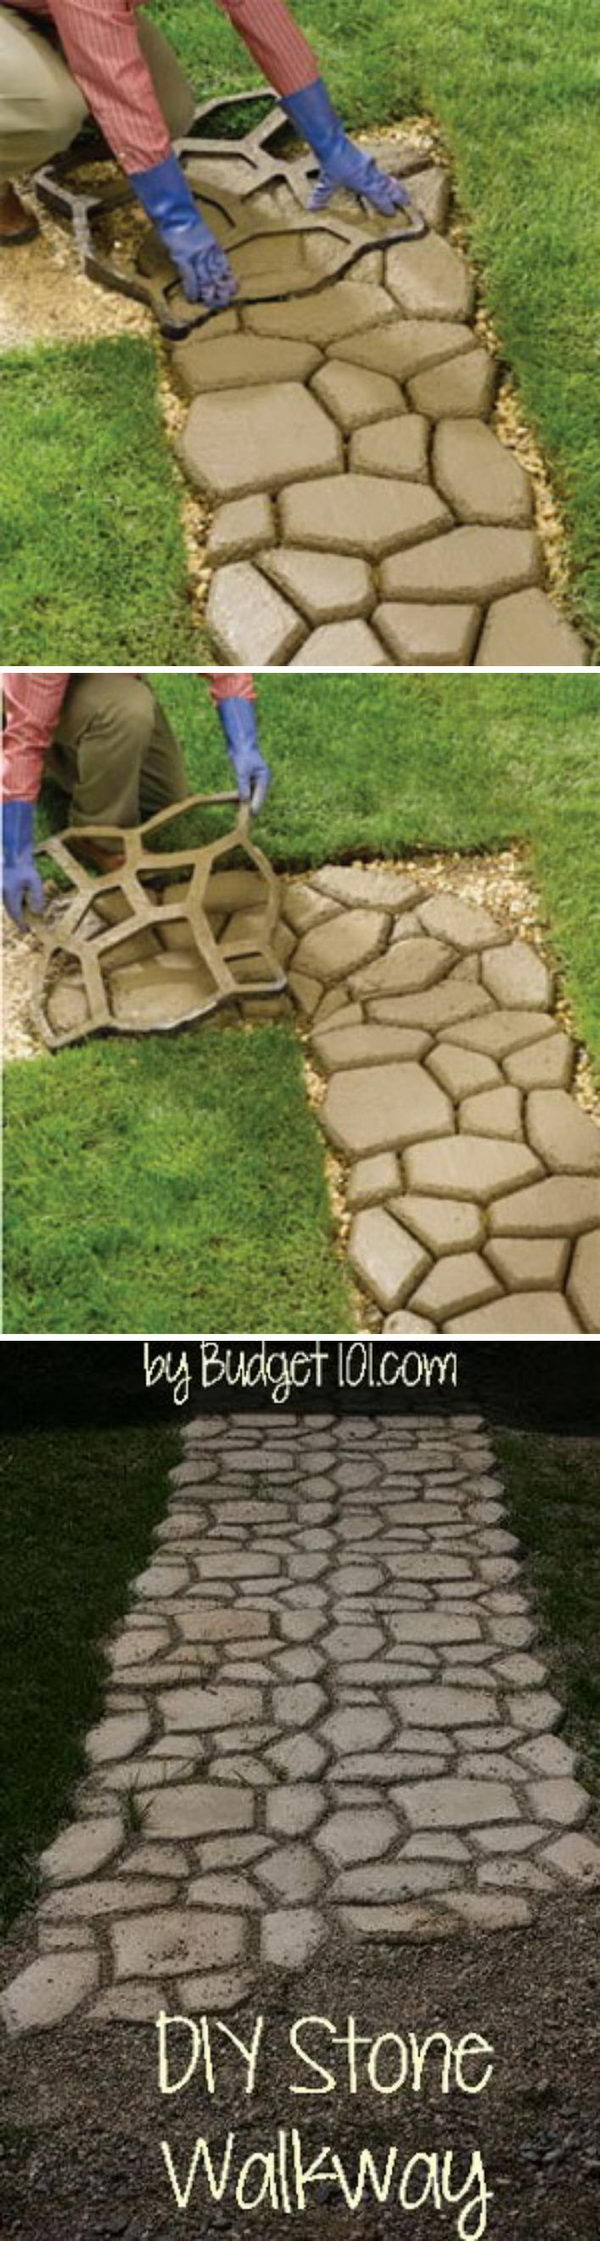 DIY Faux Stone Walkway with Concrete.